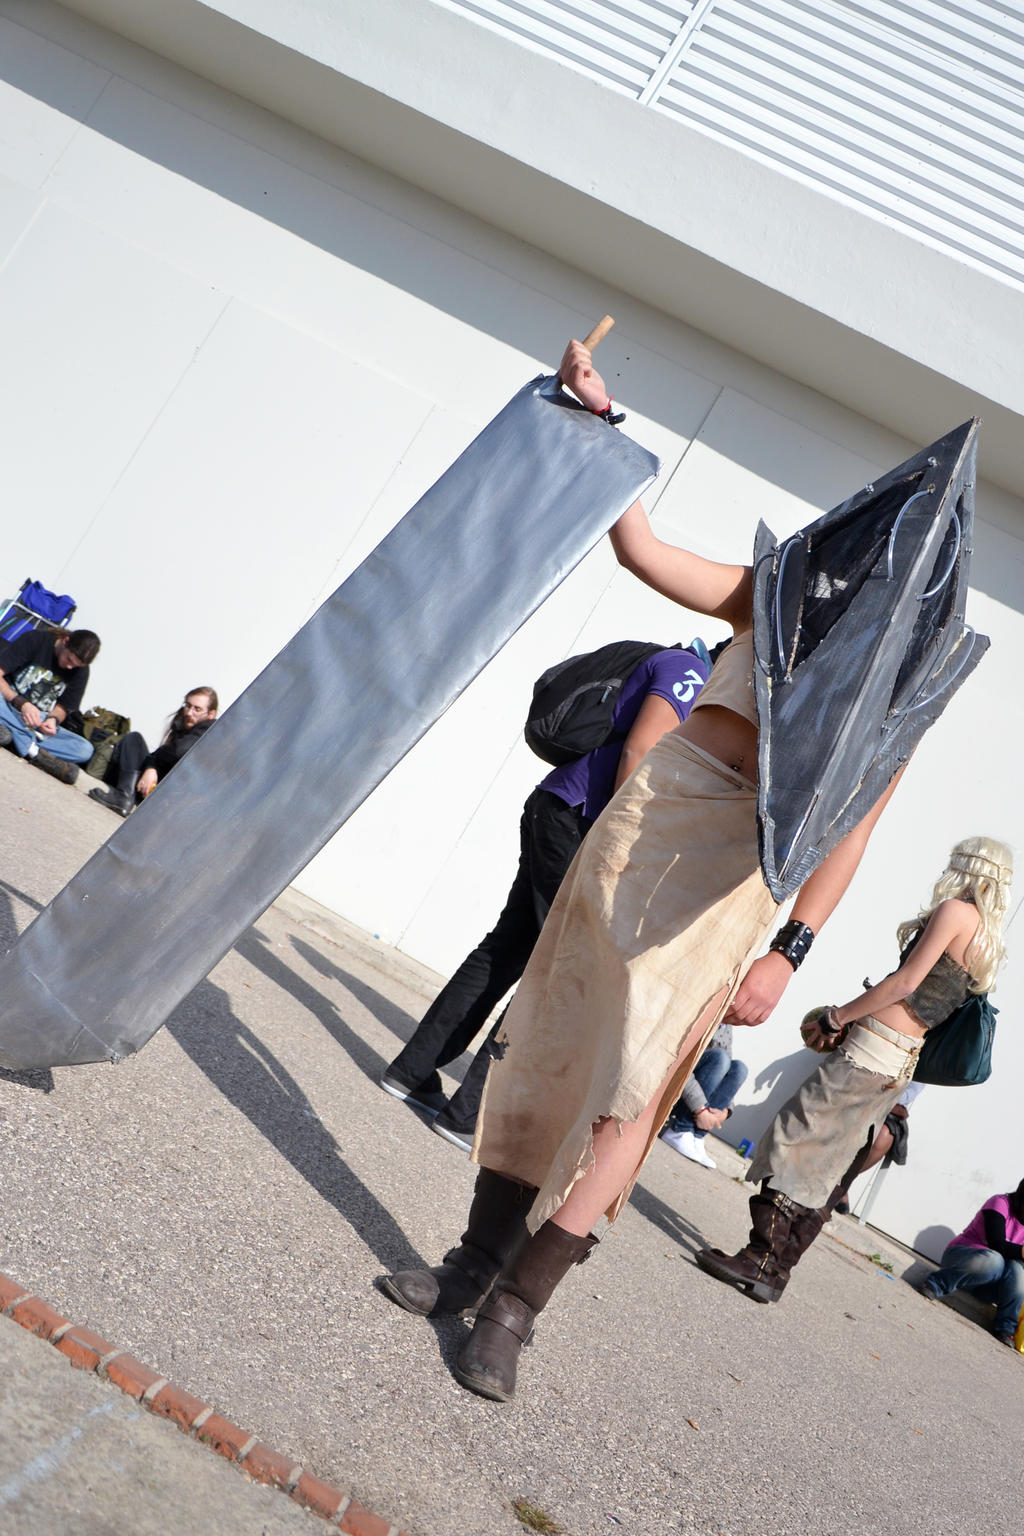 Pyramid Head from Silent Hill by Kaayxcrazy